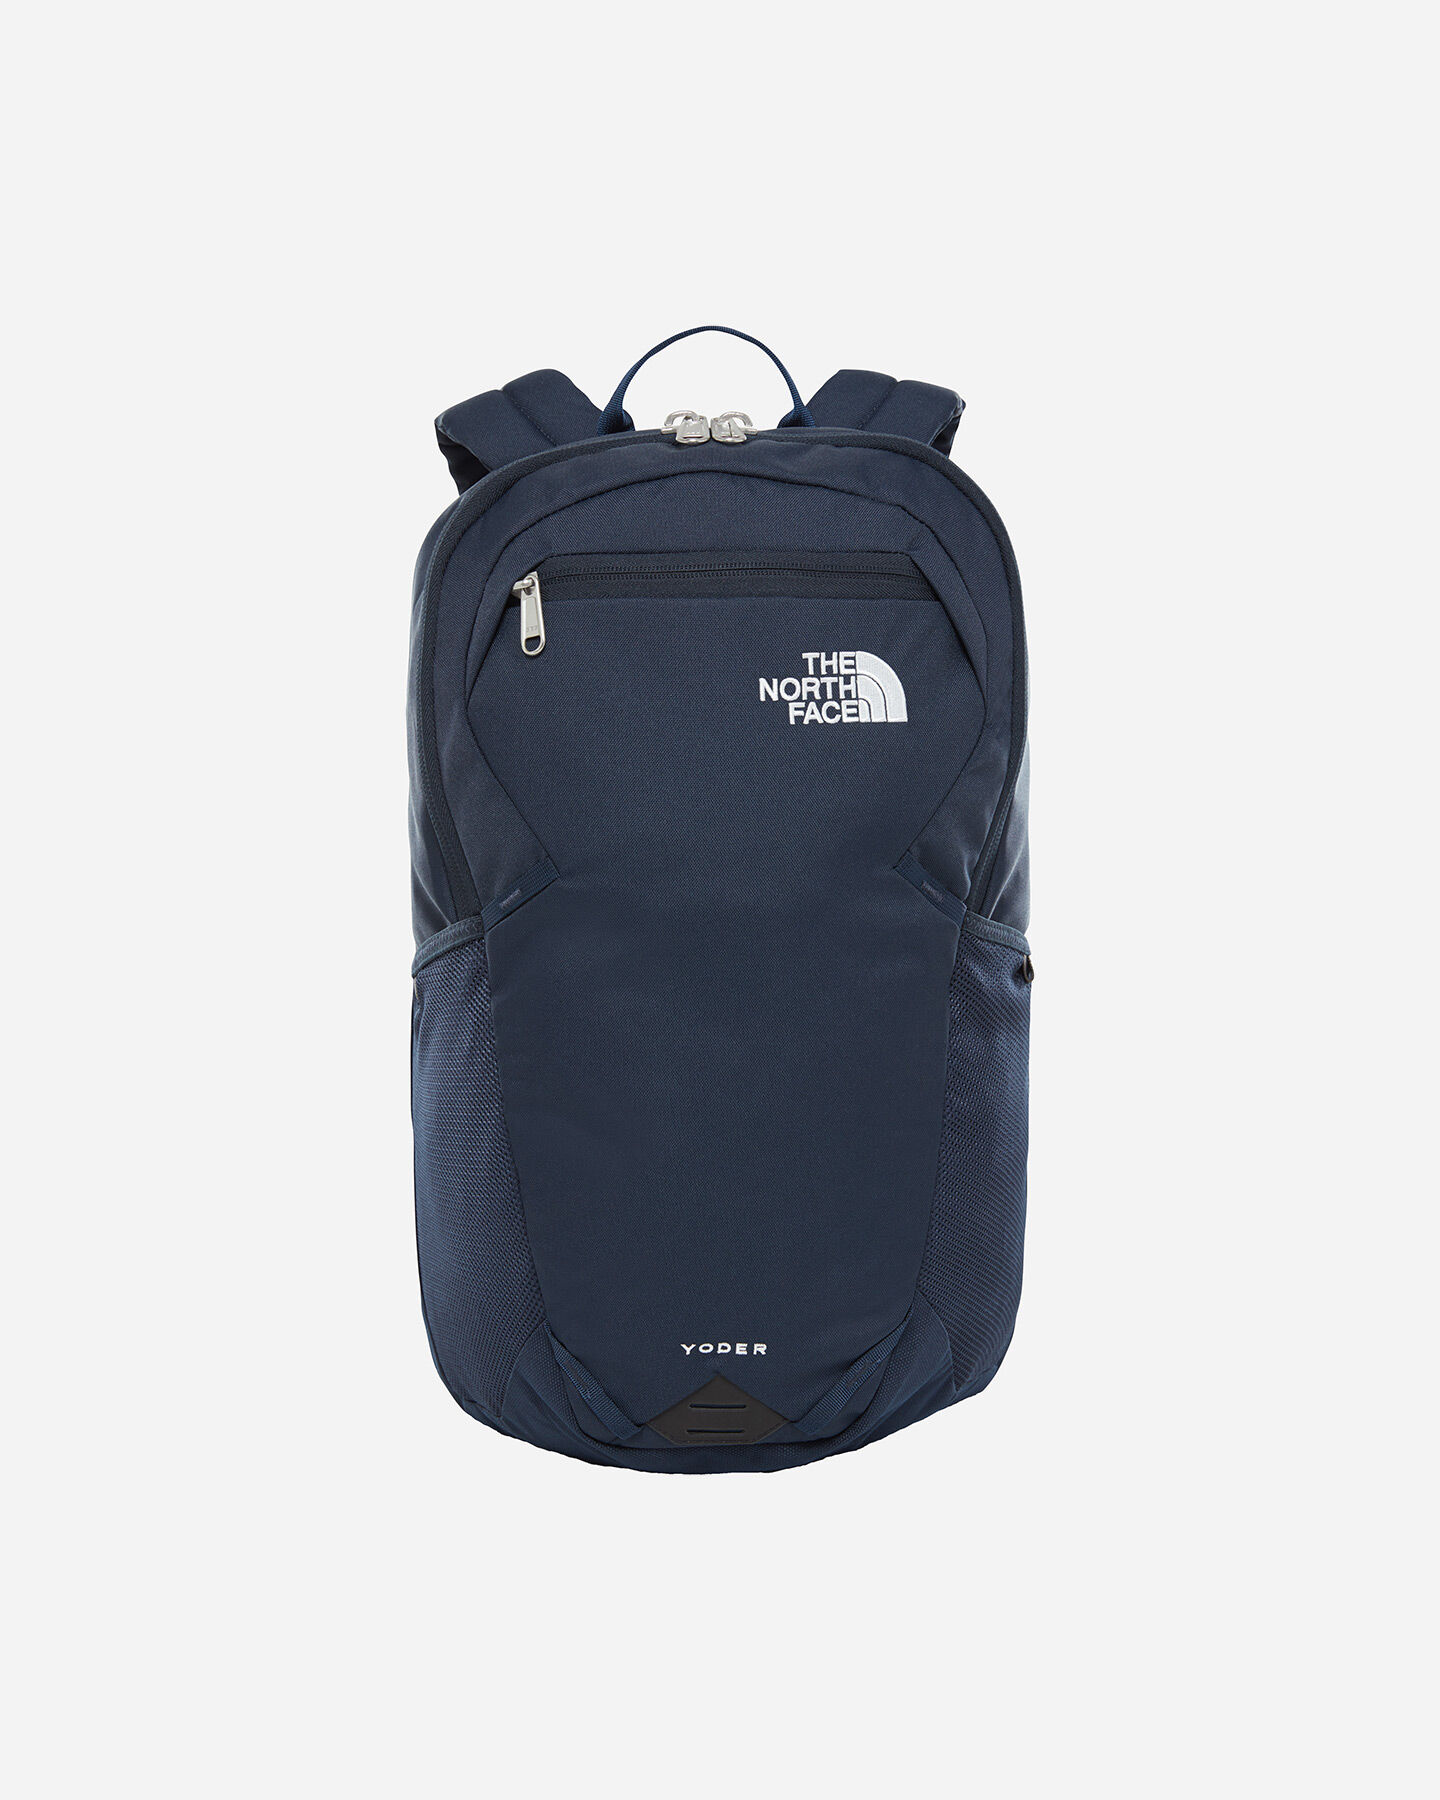 Zaino THE NORTH FACE YODER S5181565|H2G|OS scatto 0